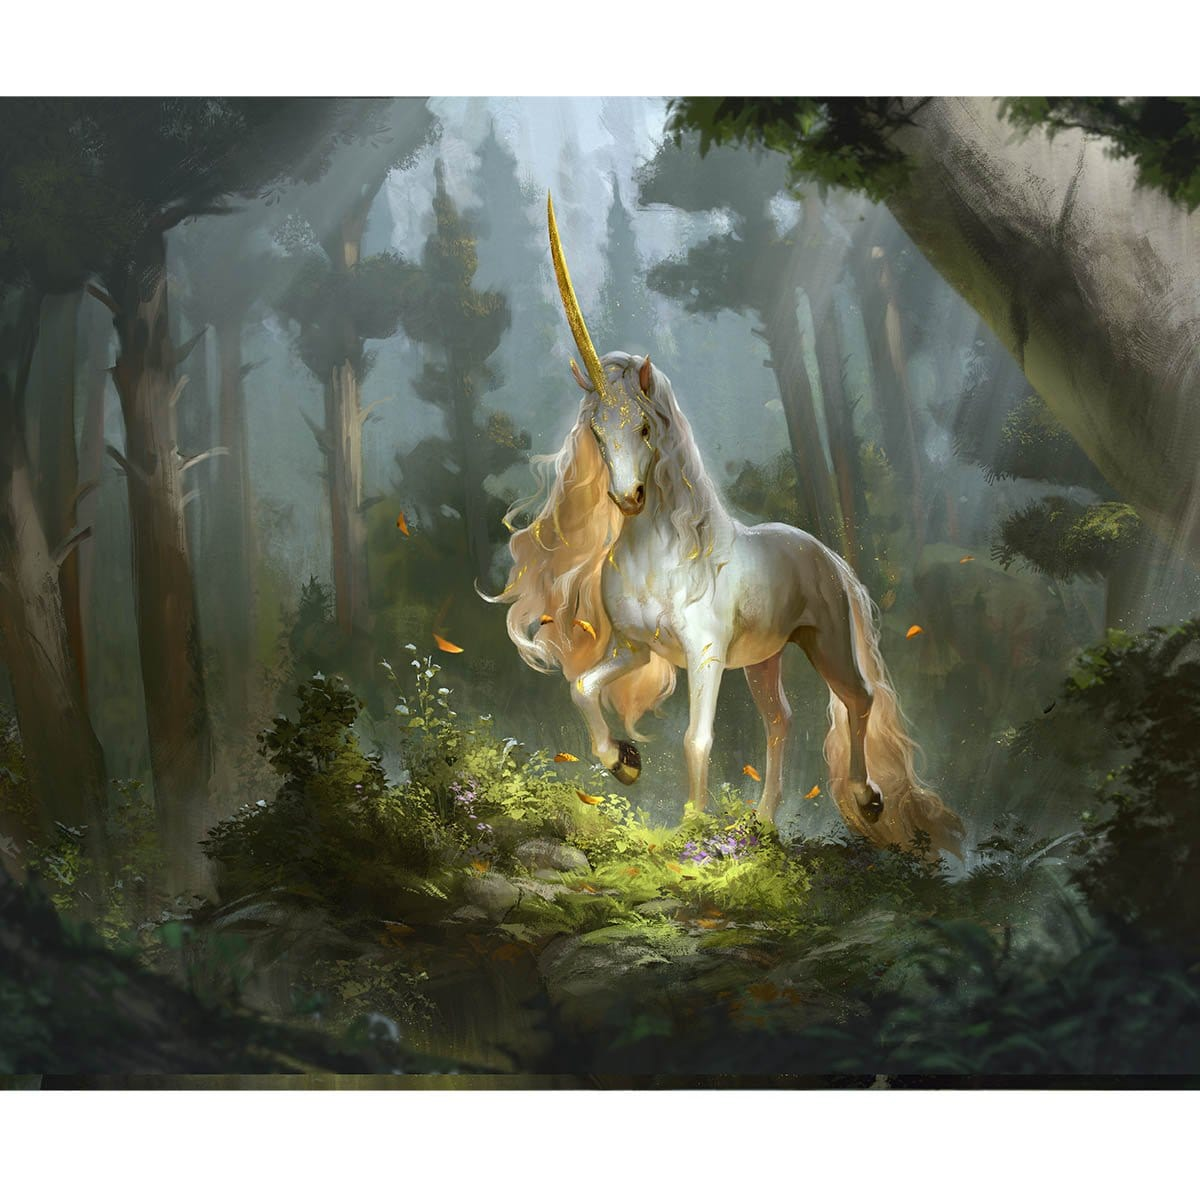 Prized Unicorn Print - Print - Original Magic Art - Accessories for Magic the Gathering and other card games